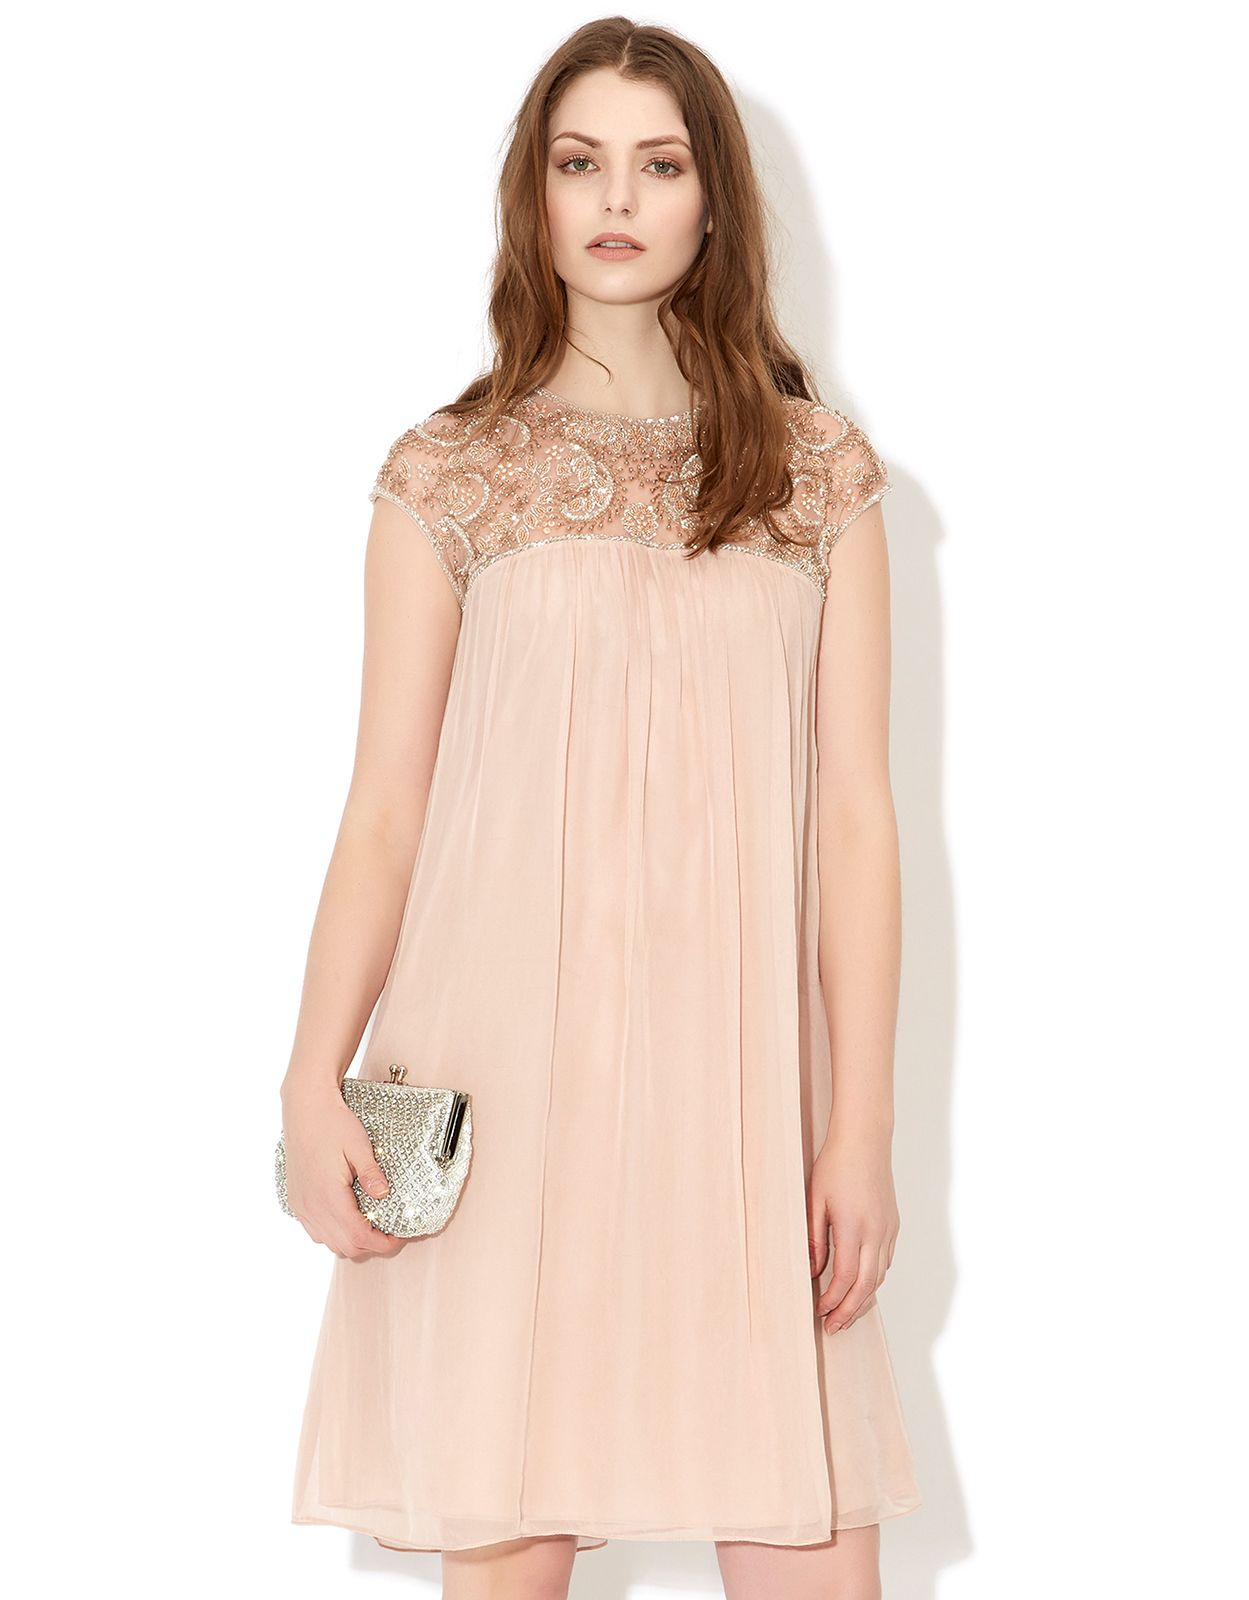 Canna dress pink monsoon fashion make upsurfing pinterest pin for later beautiful vintage inspired dresses to wear to summer weddings monsoon canna dress monsoon canna dress ombrellifo Choice Image